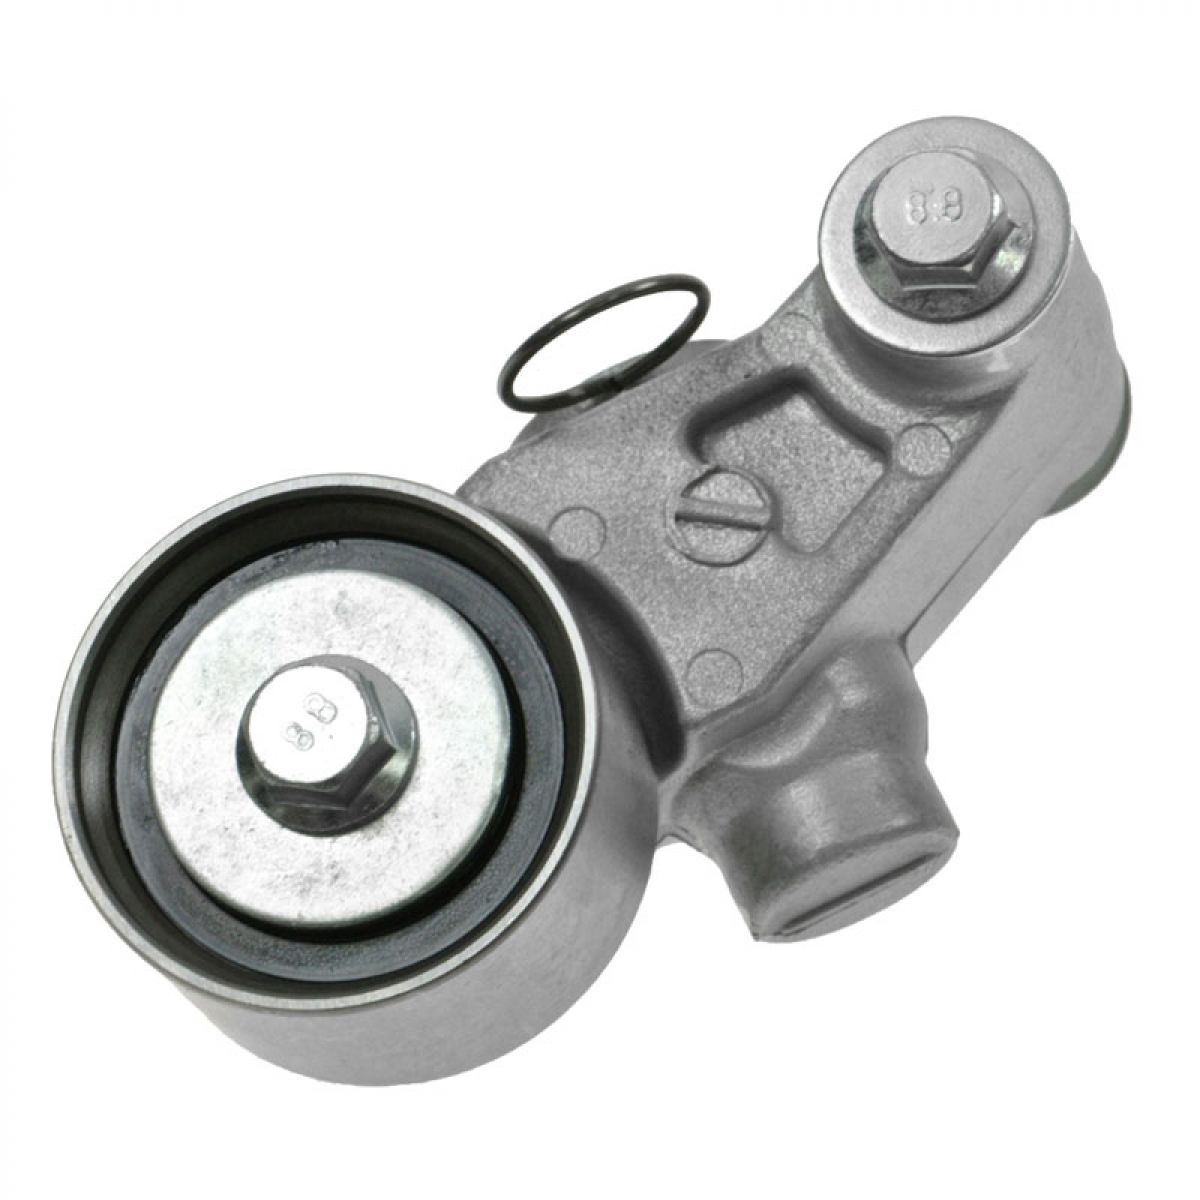 Timing Belt Pulley Price : Timing belt tensioner assembly w pulley for subaru impreza